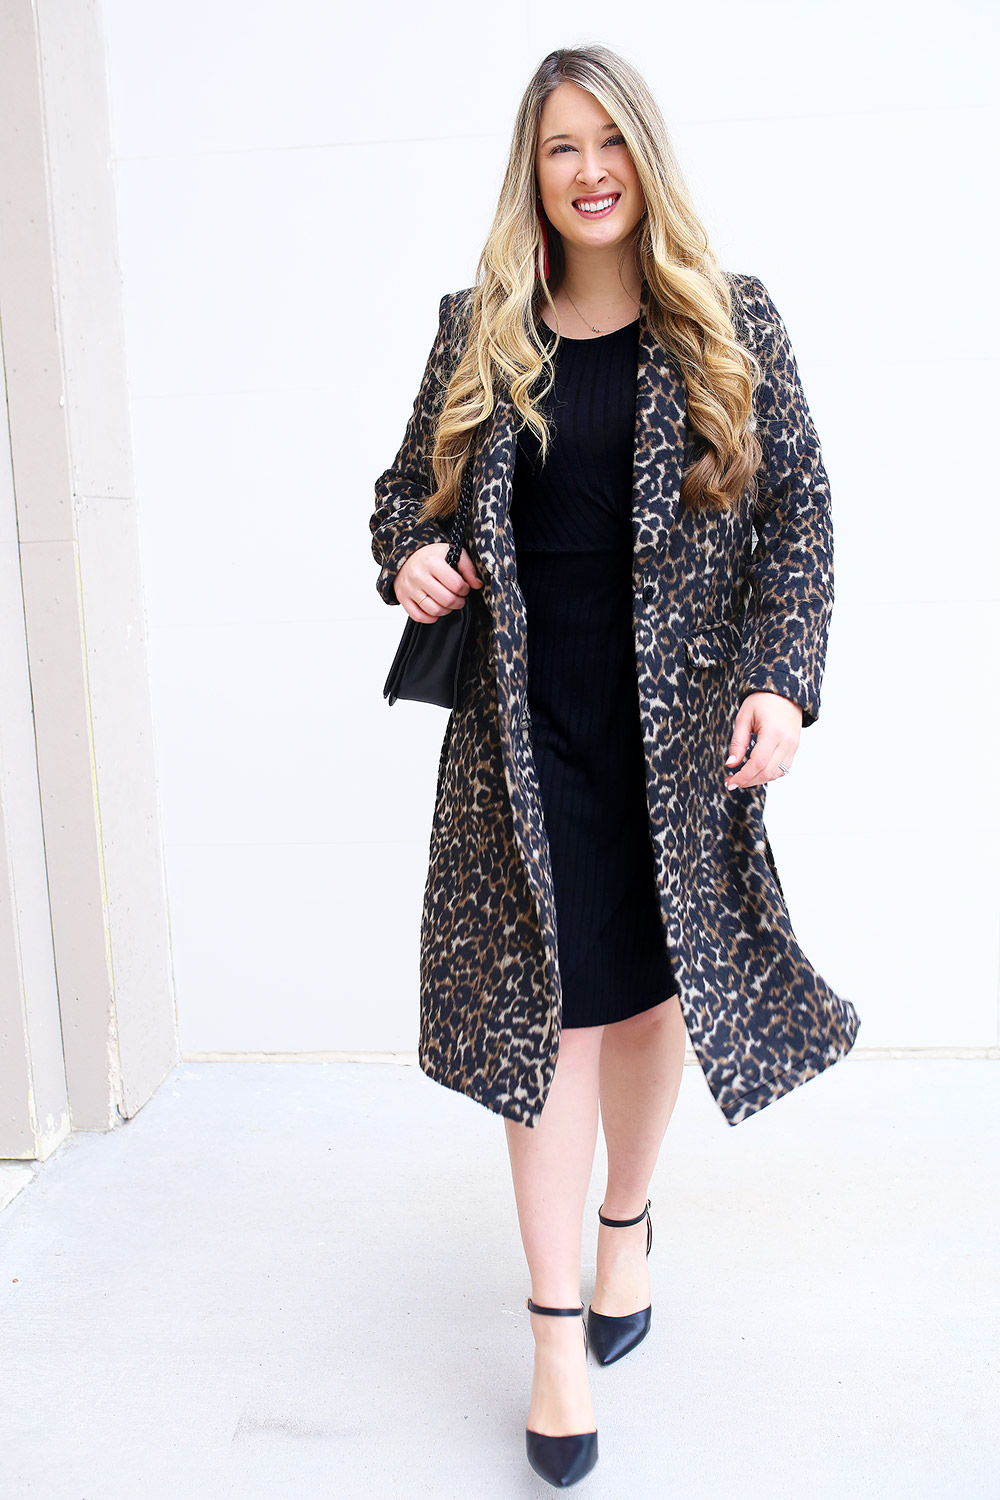 Outfit ideas for winter coats. Affordable winter coats. How to style a winter coat. Winter outfit inspiration with heavy coats. 30 Winter Coats for Less than $150